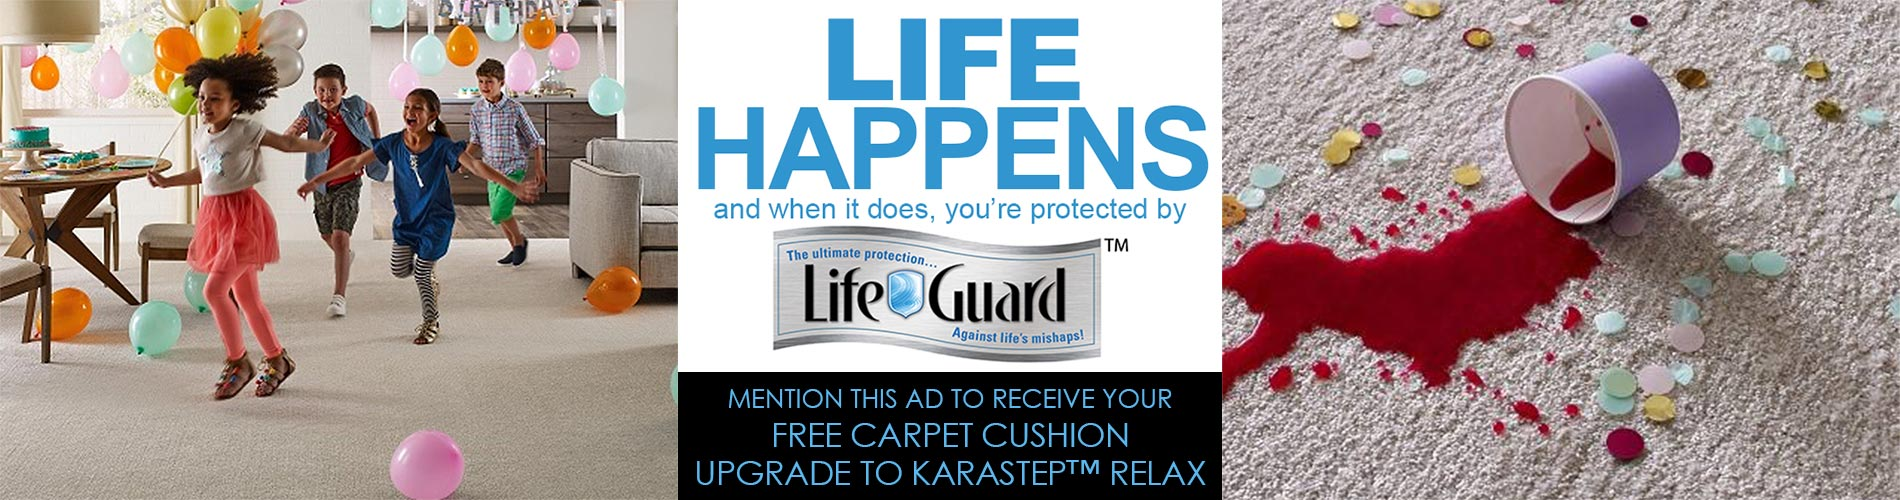 Free carpet cushion upgrade to Karastep™ Relax at Blodgett's Abbey Carpet & Flooring!